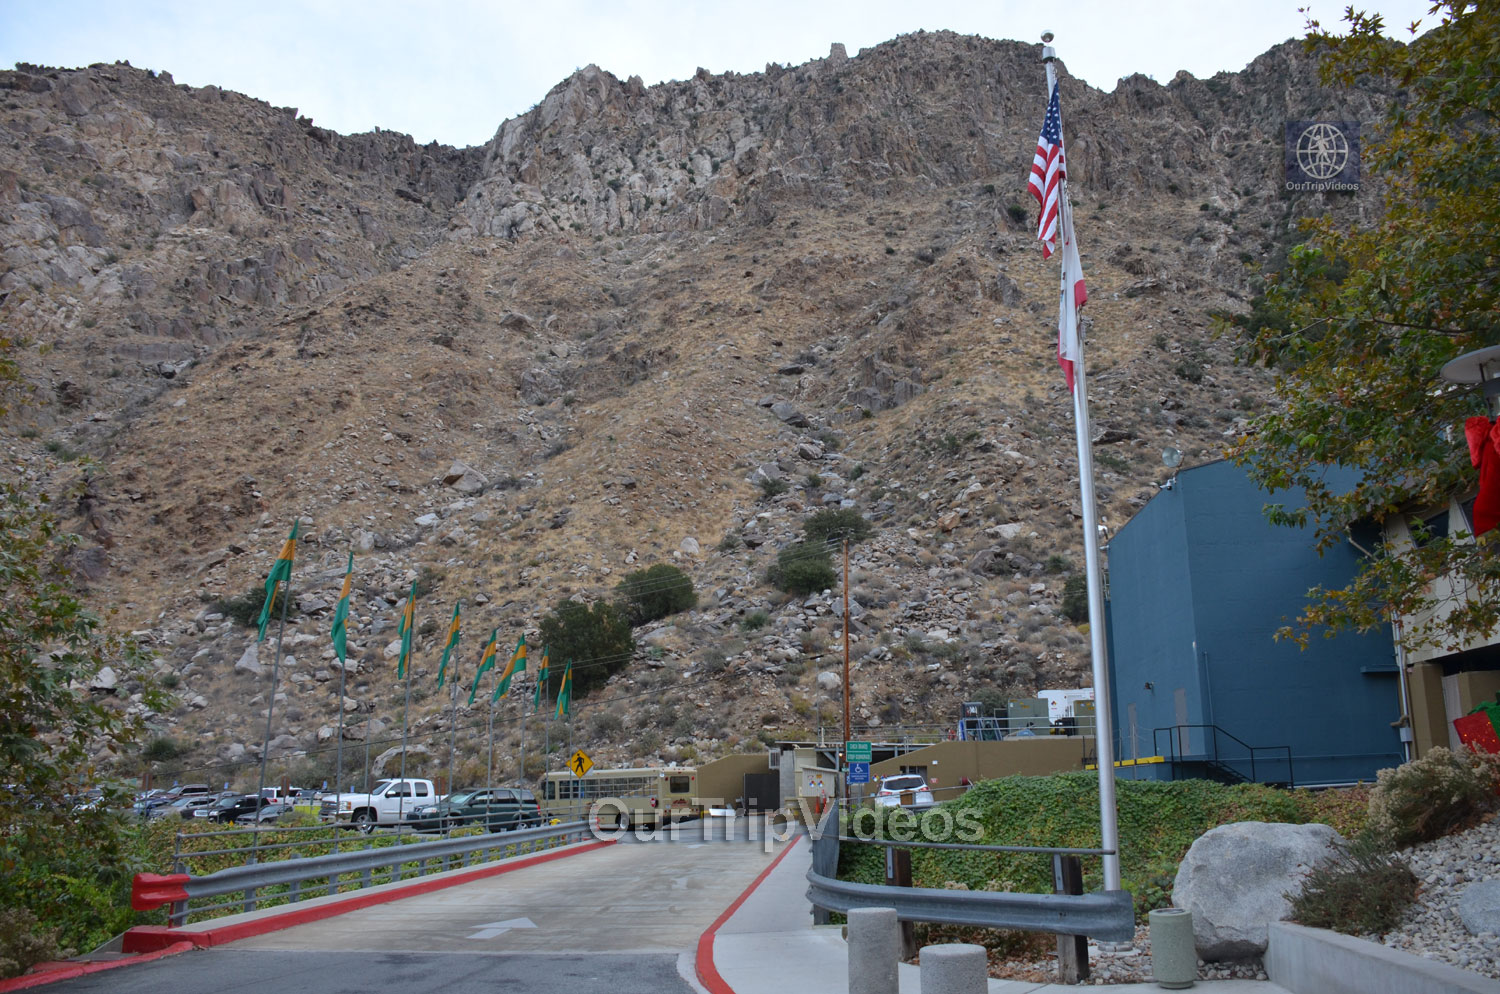 Aerial Tramway, Palm Springs, CA, USA - Picture 8 of 25